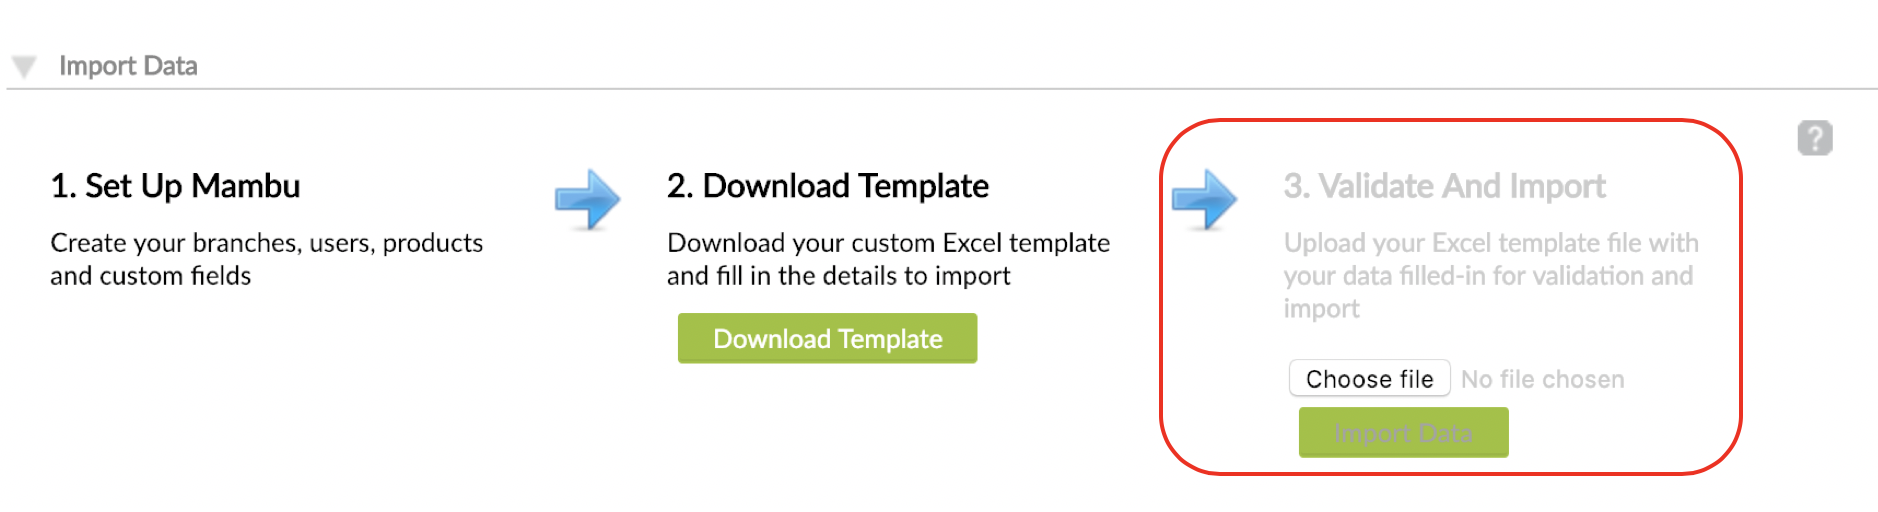 Validate And Import set with Import Data button